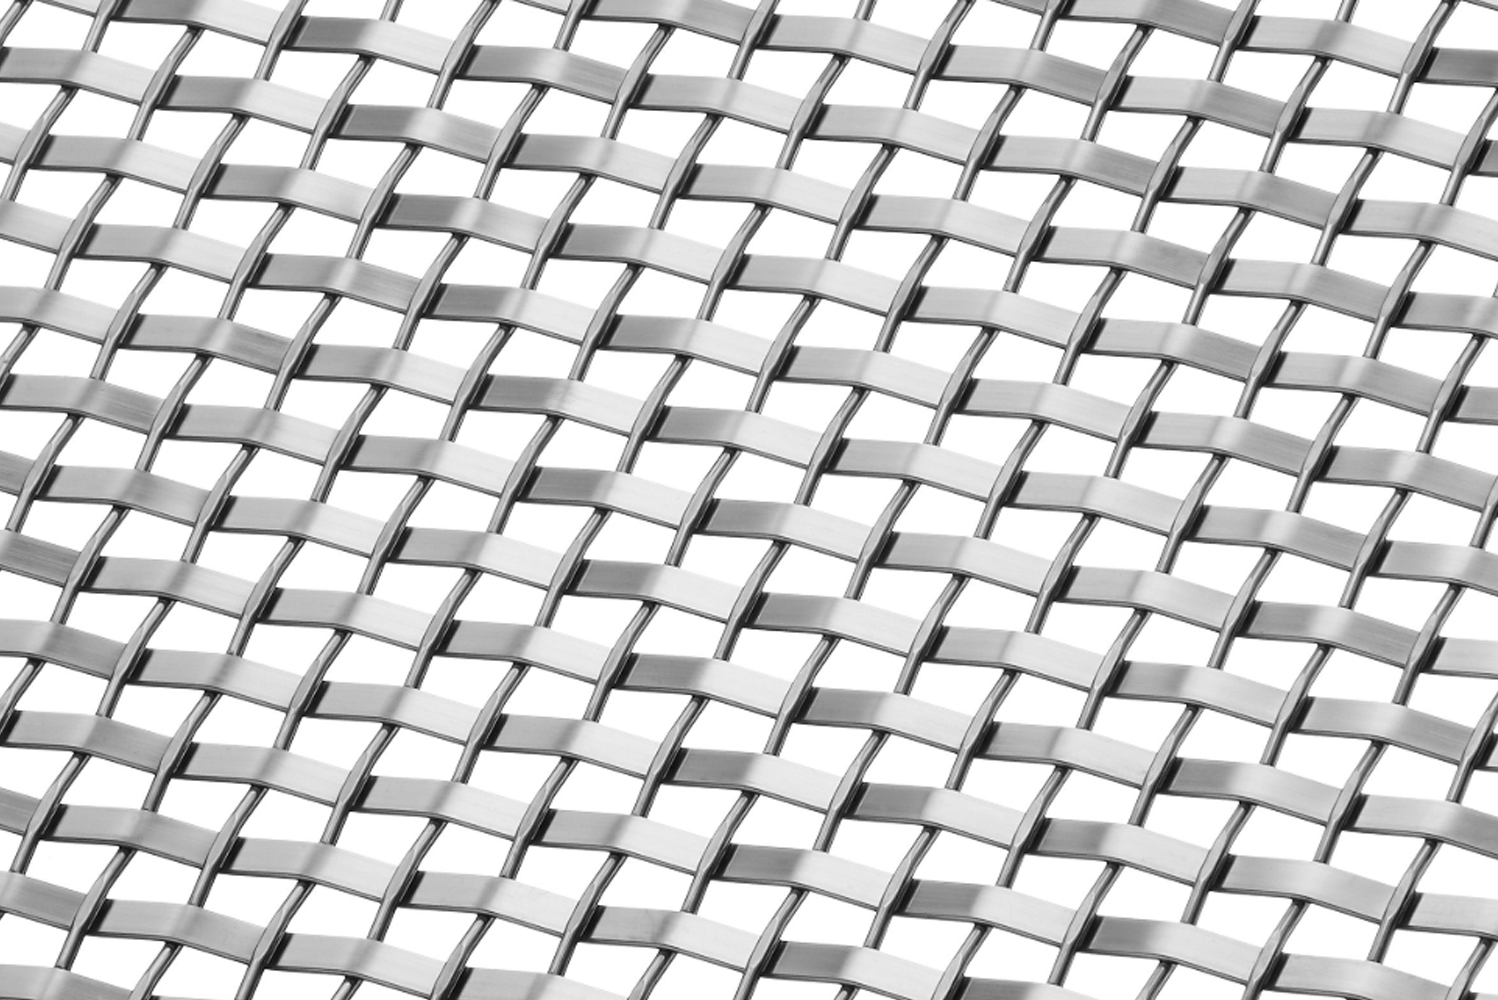 The SZ-14 woven wire mesh pattern mixes contrasting flat and round wires to create an uncommon, yet refined, composition and square-like shapes.